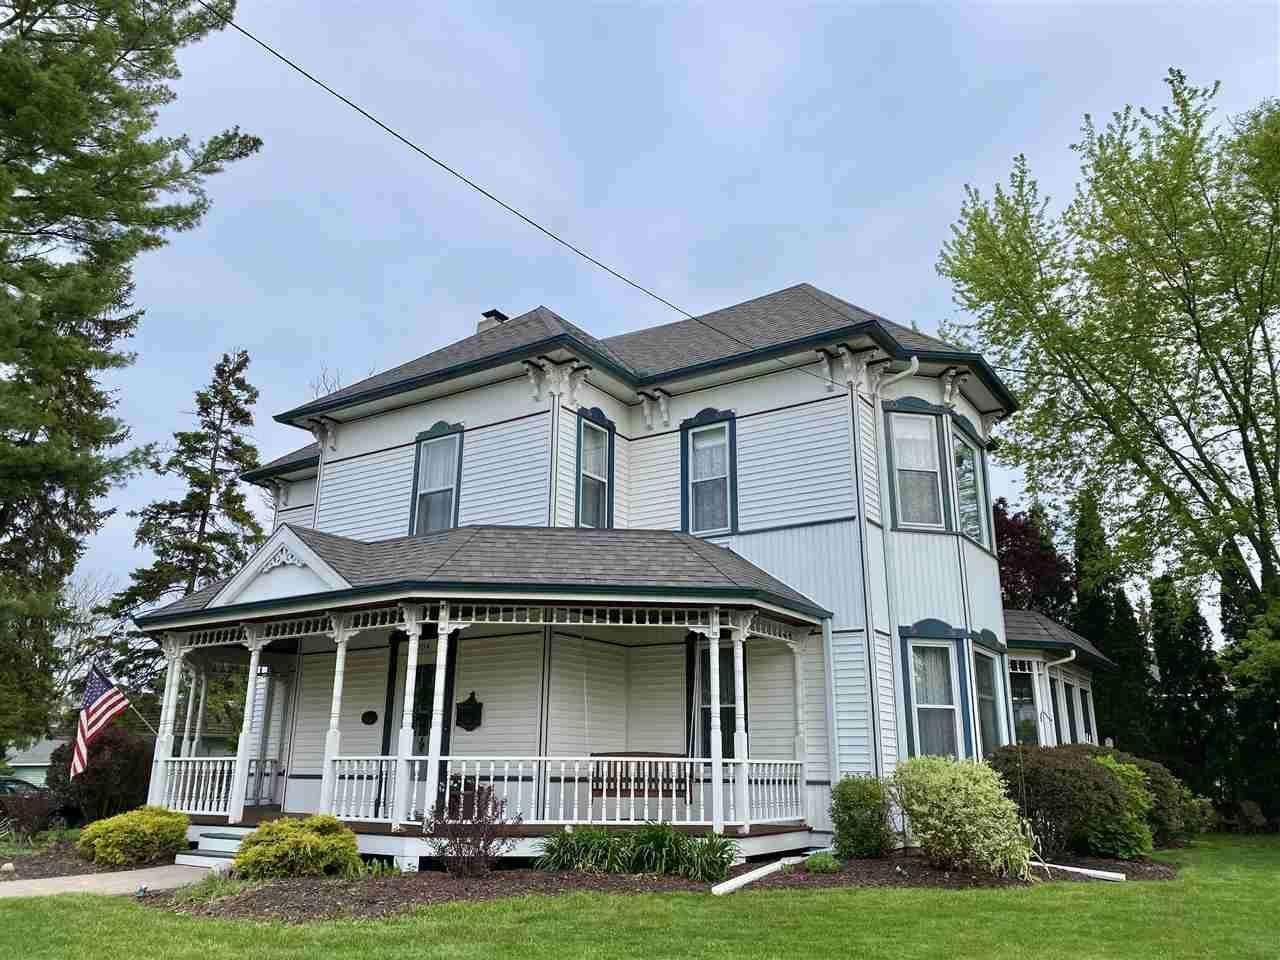 504 Jackson St, Stoughton, WI 53589 - MLS#: 1879228